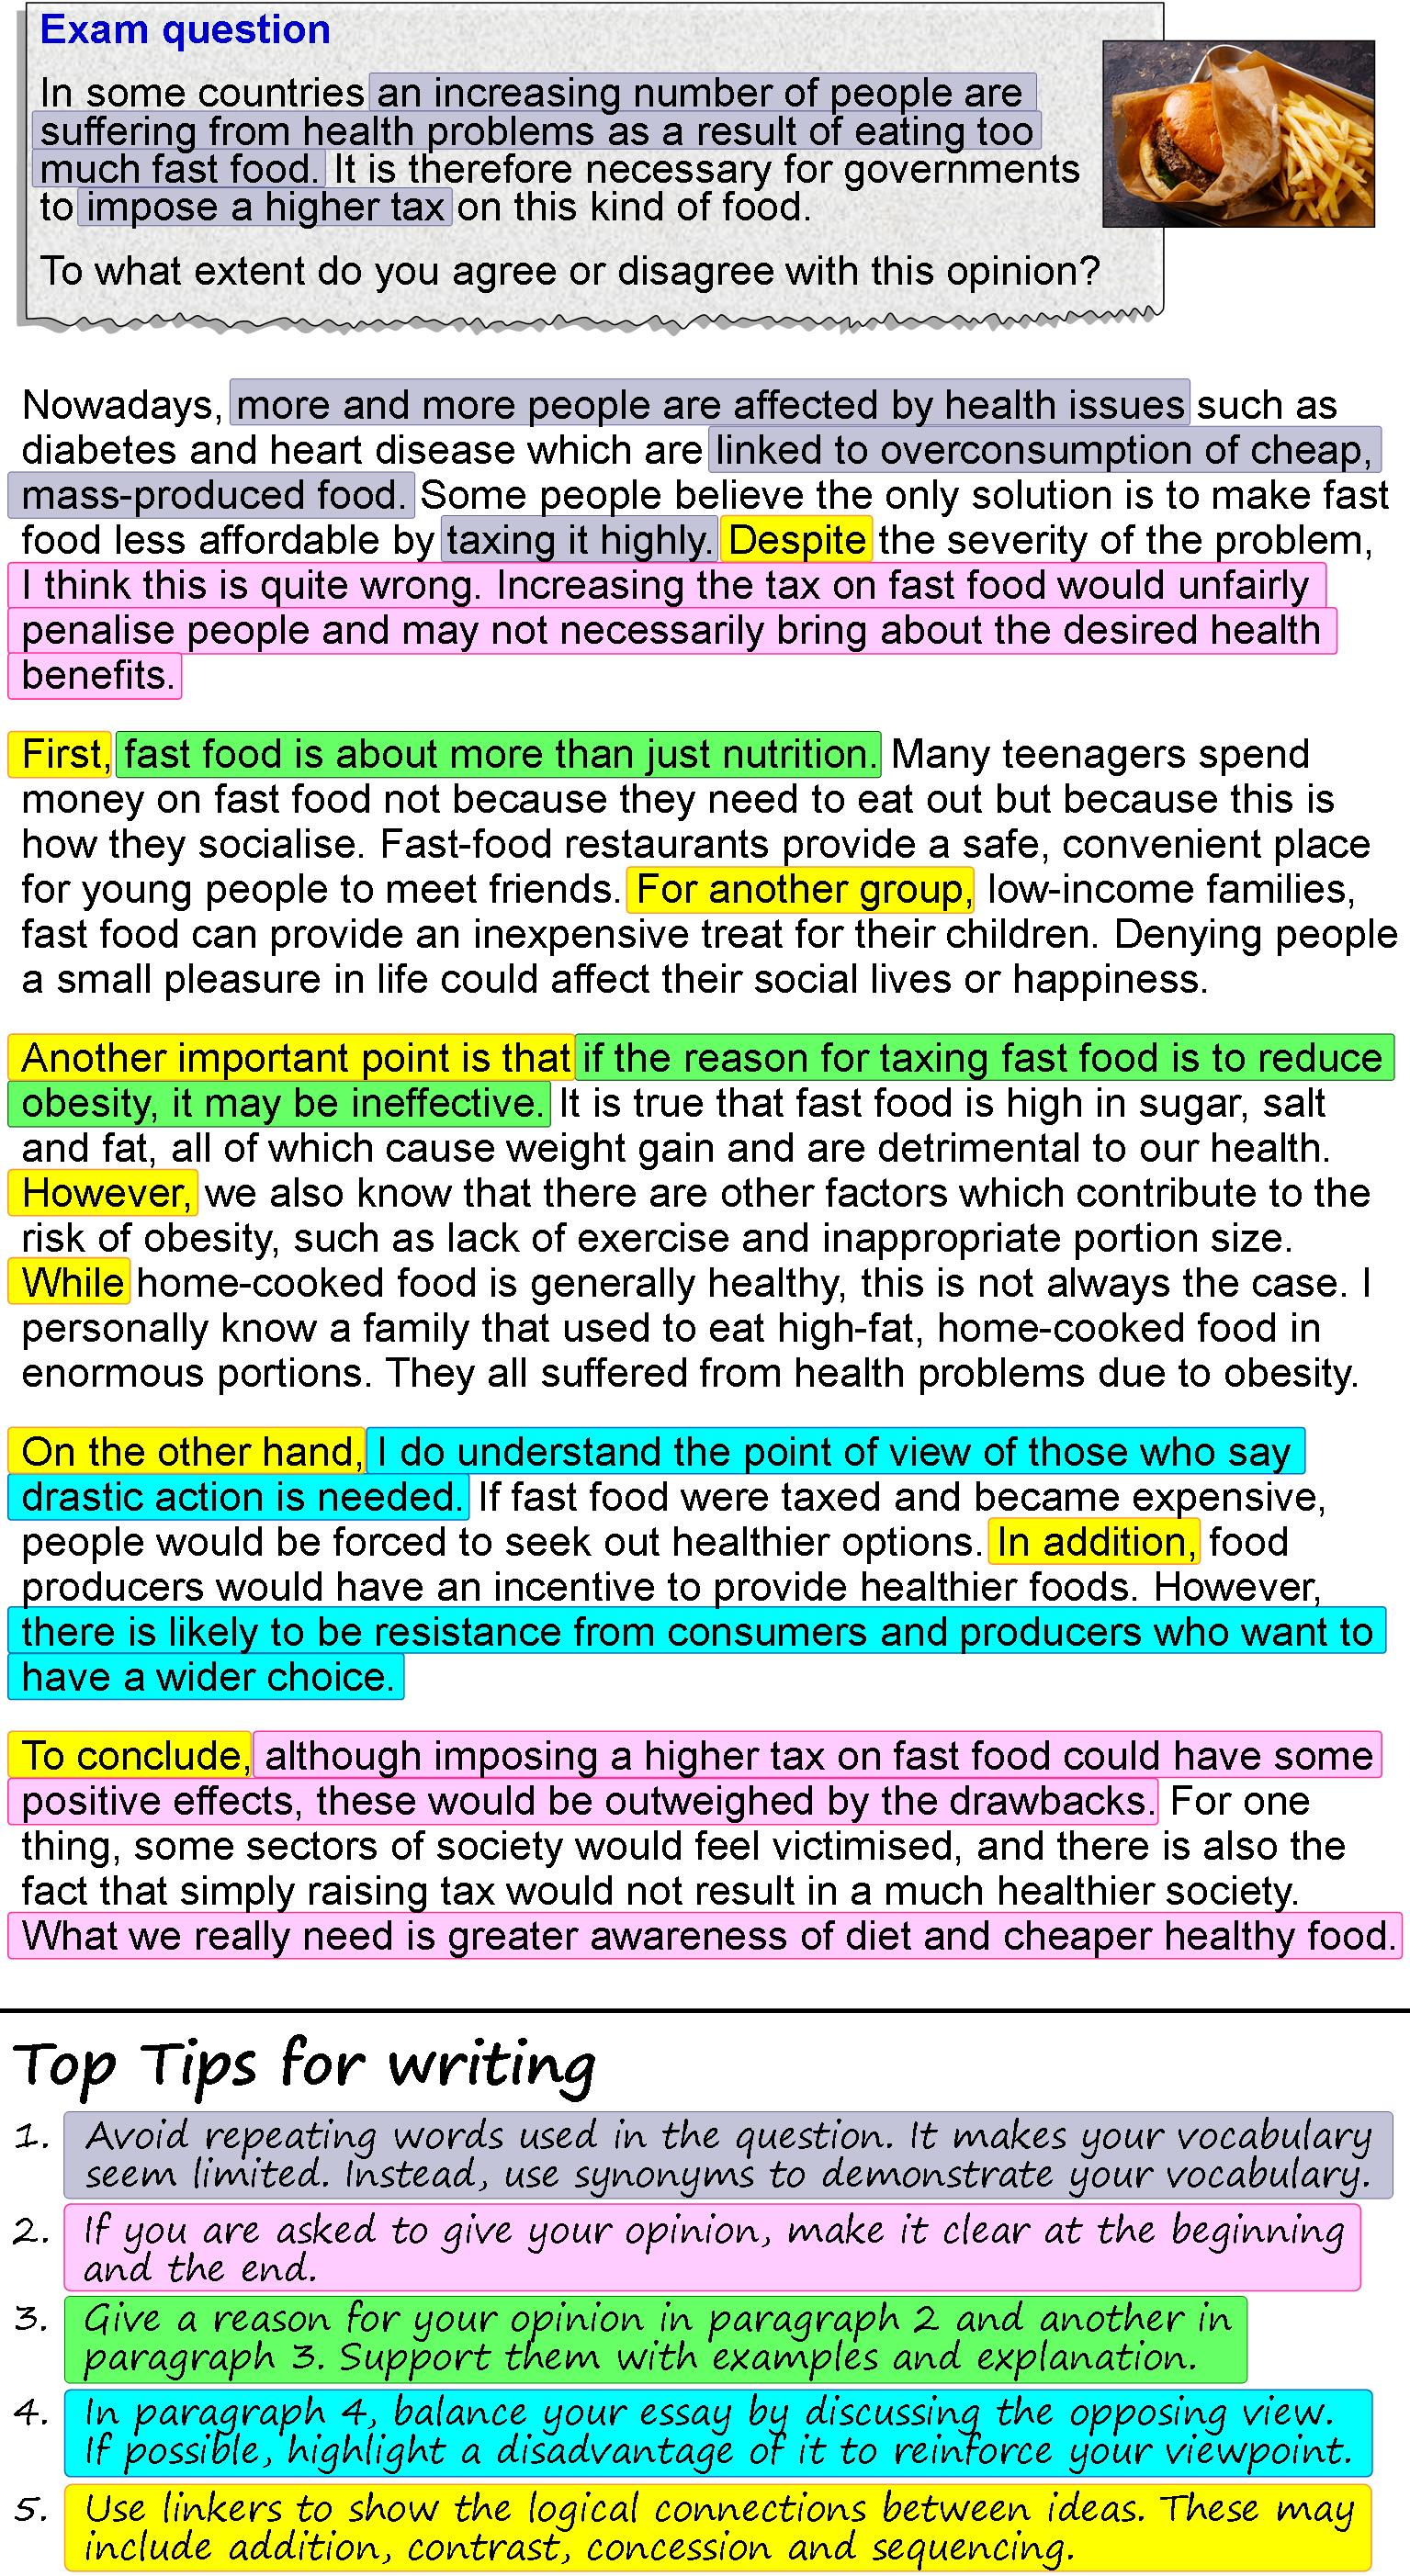 002 Essay Example Healthy Food An Opinion About Fast 4 Best On For Class 10 My Favourite 1 In Tamil Full